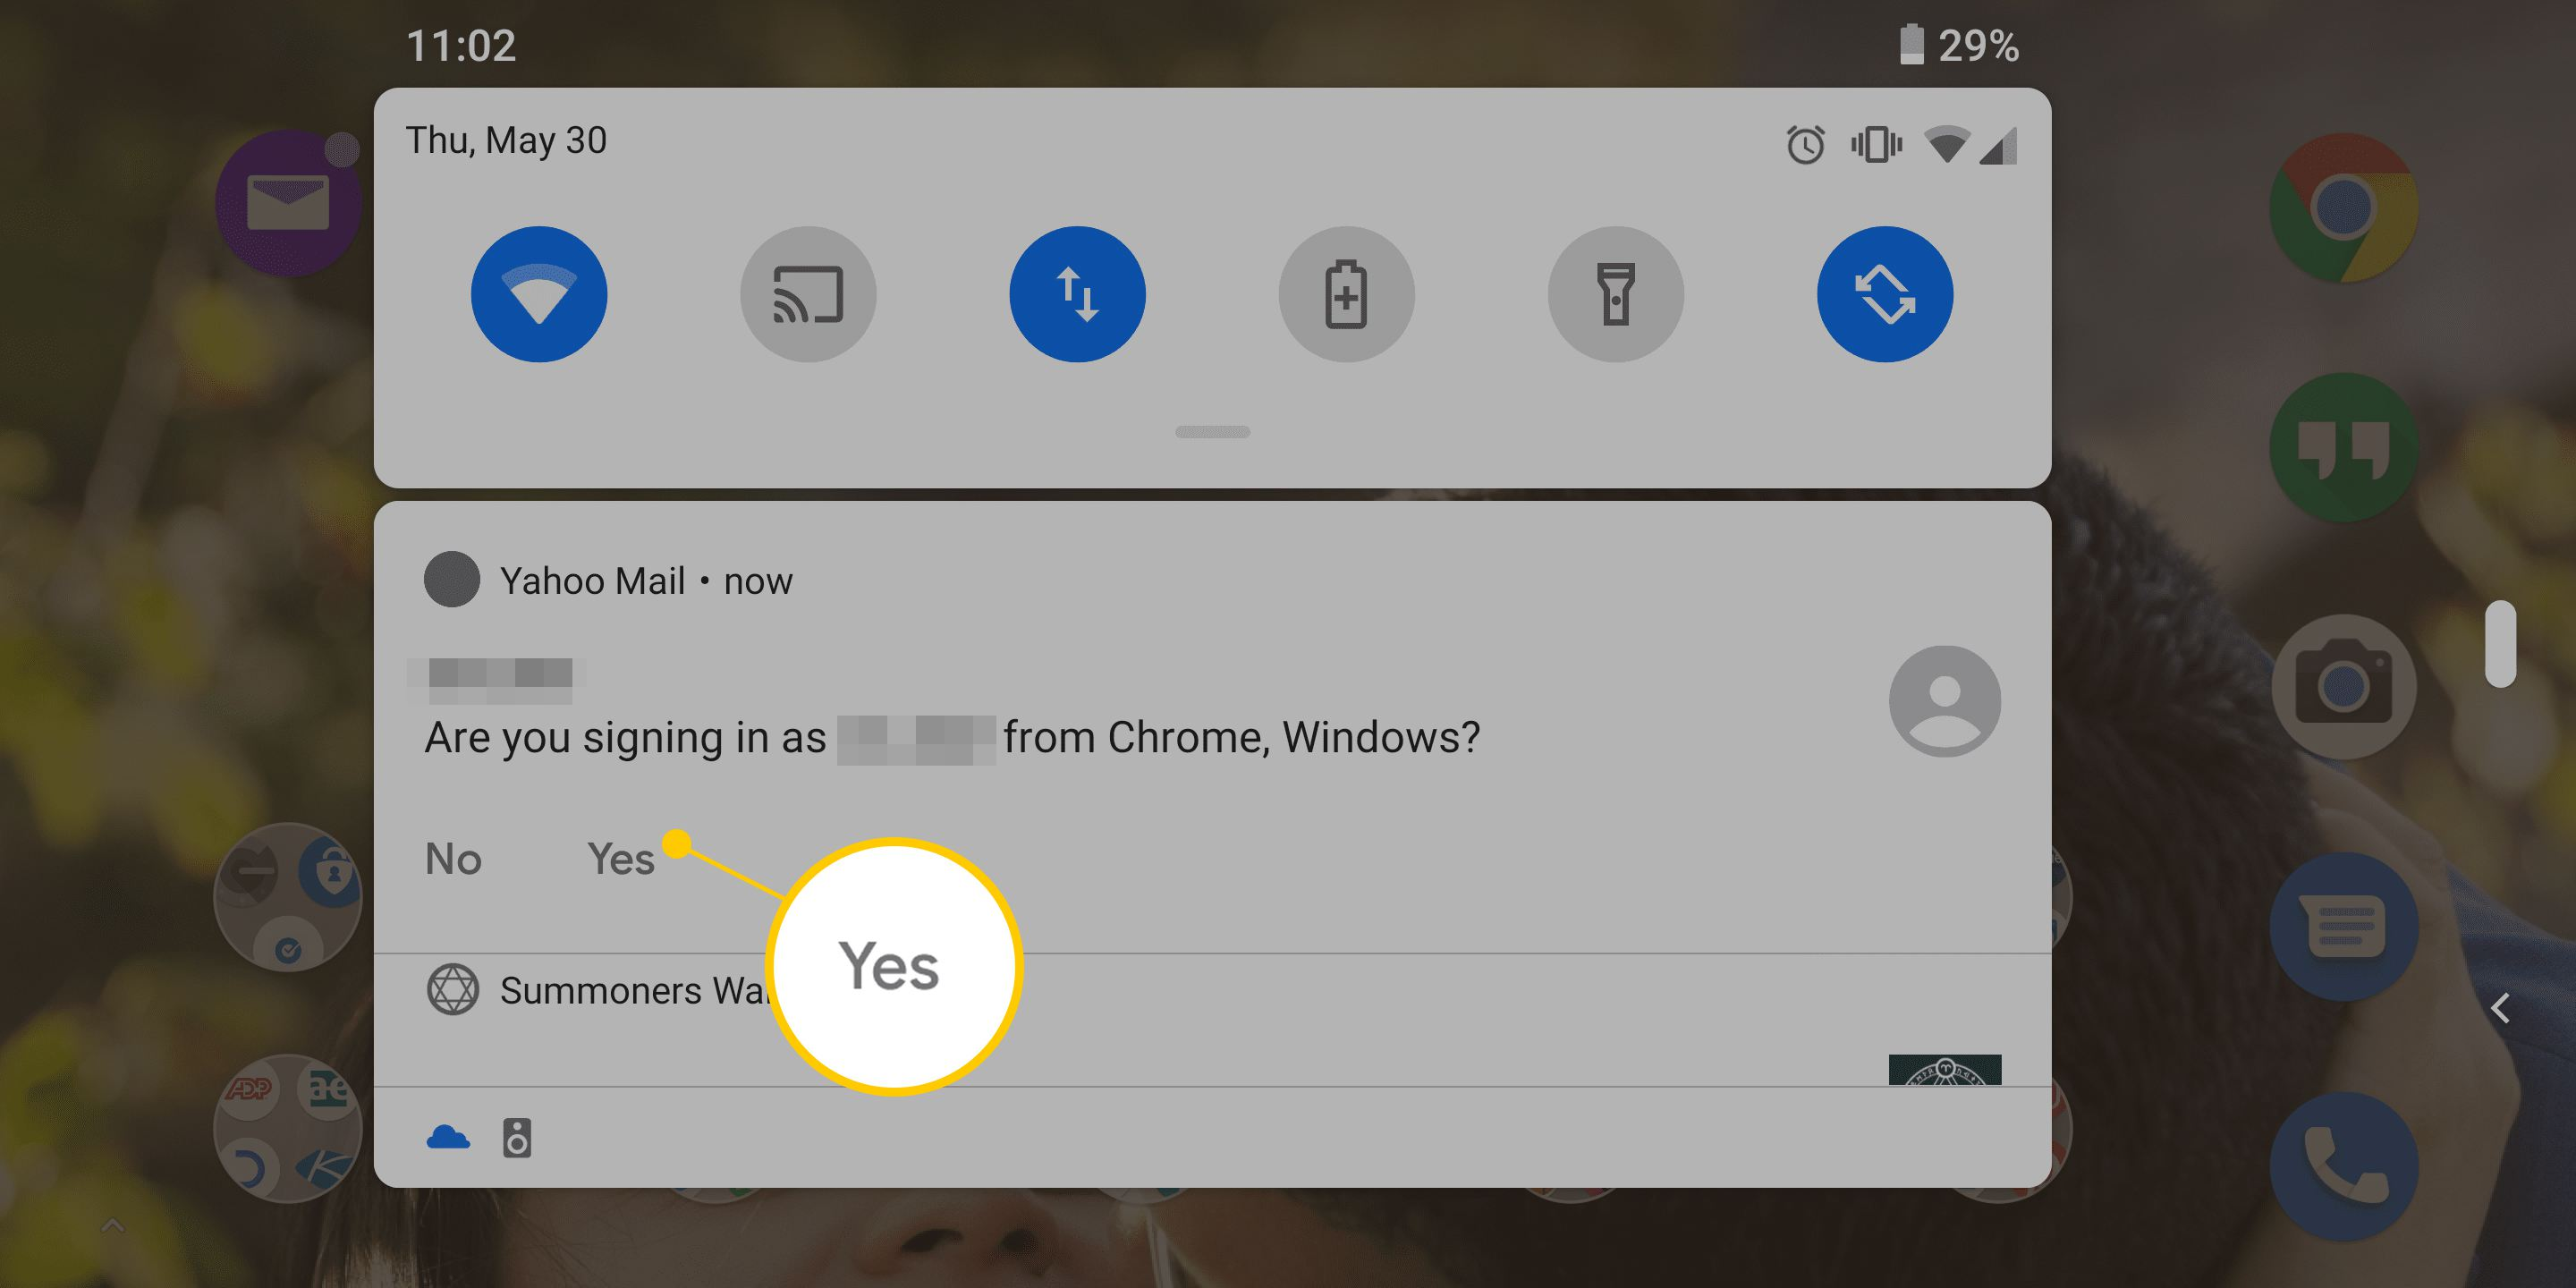 Yes button sign in confirmation on Android